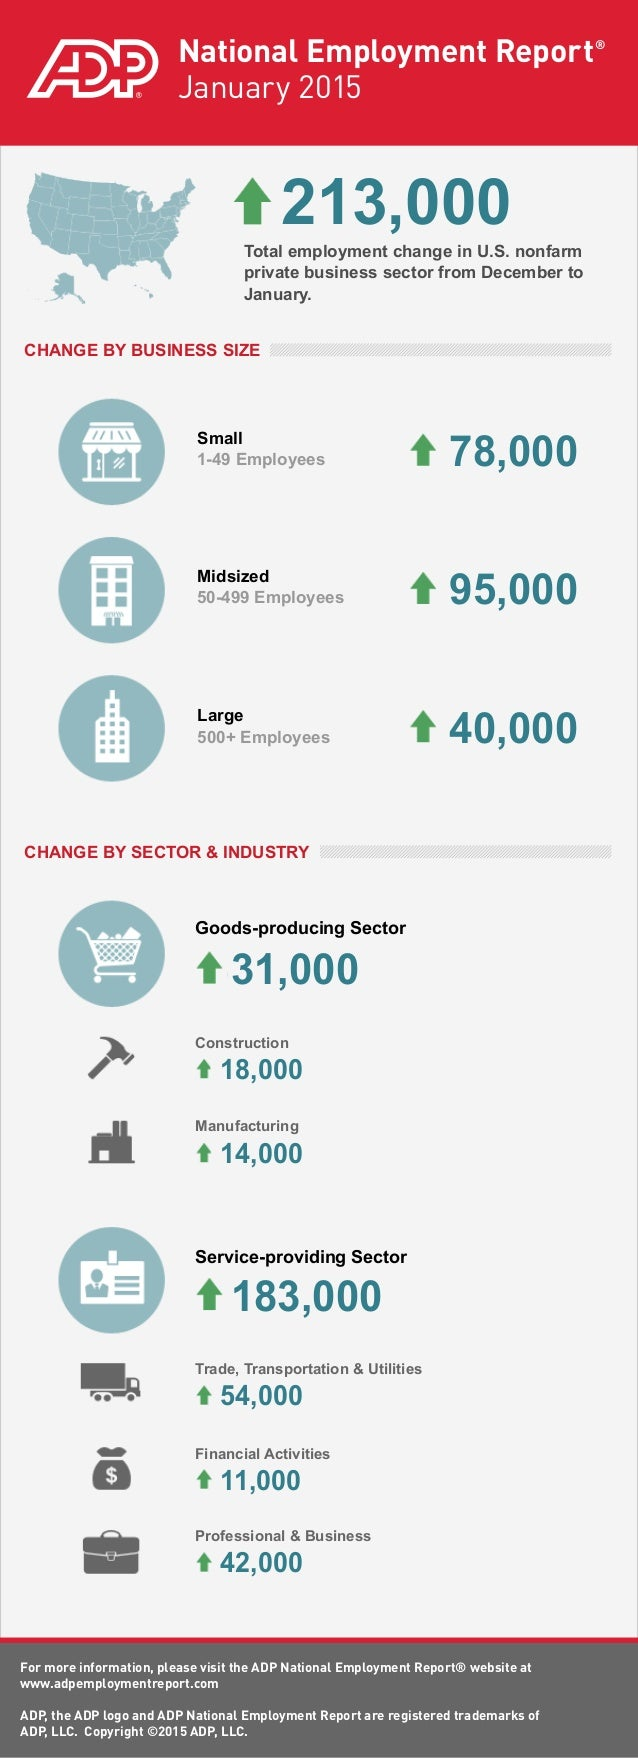 ADP National Employment Report: January 2015